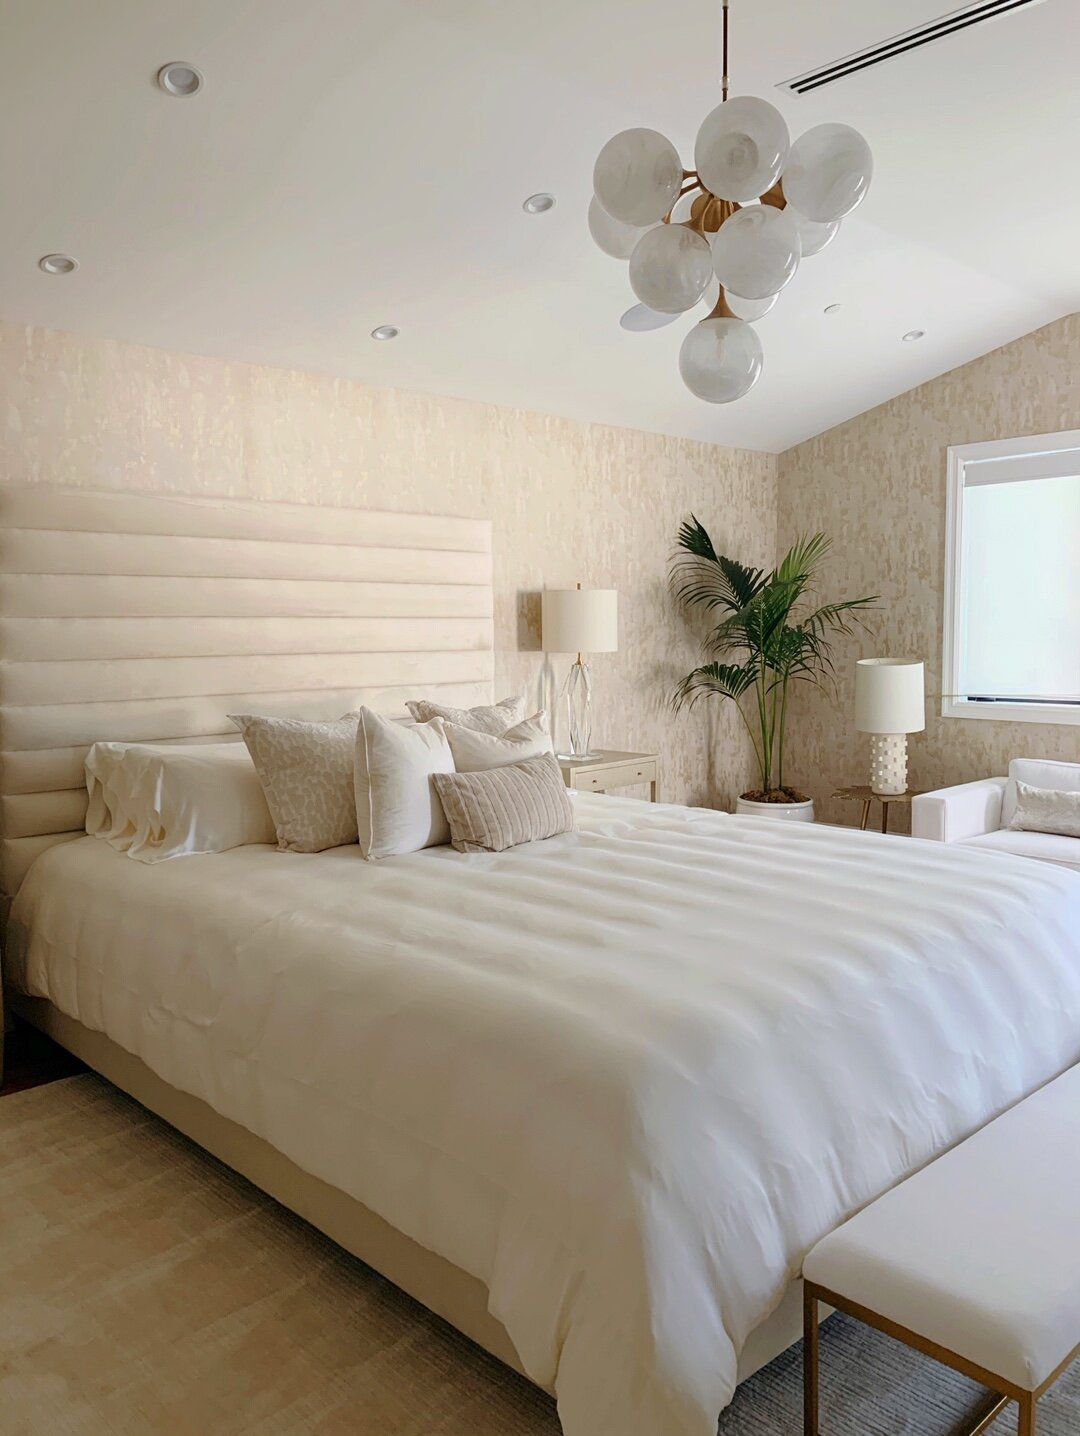 A neutral bedroom with a modern globe pendant light.